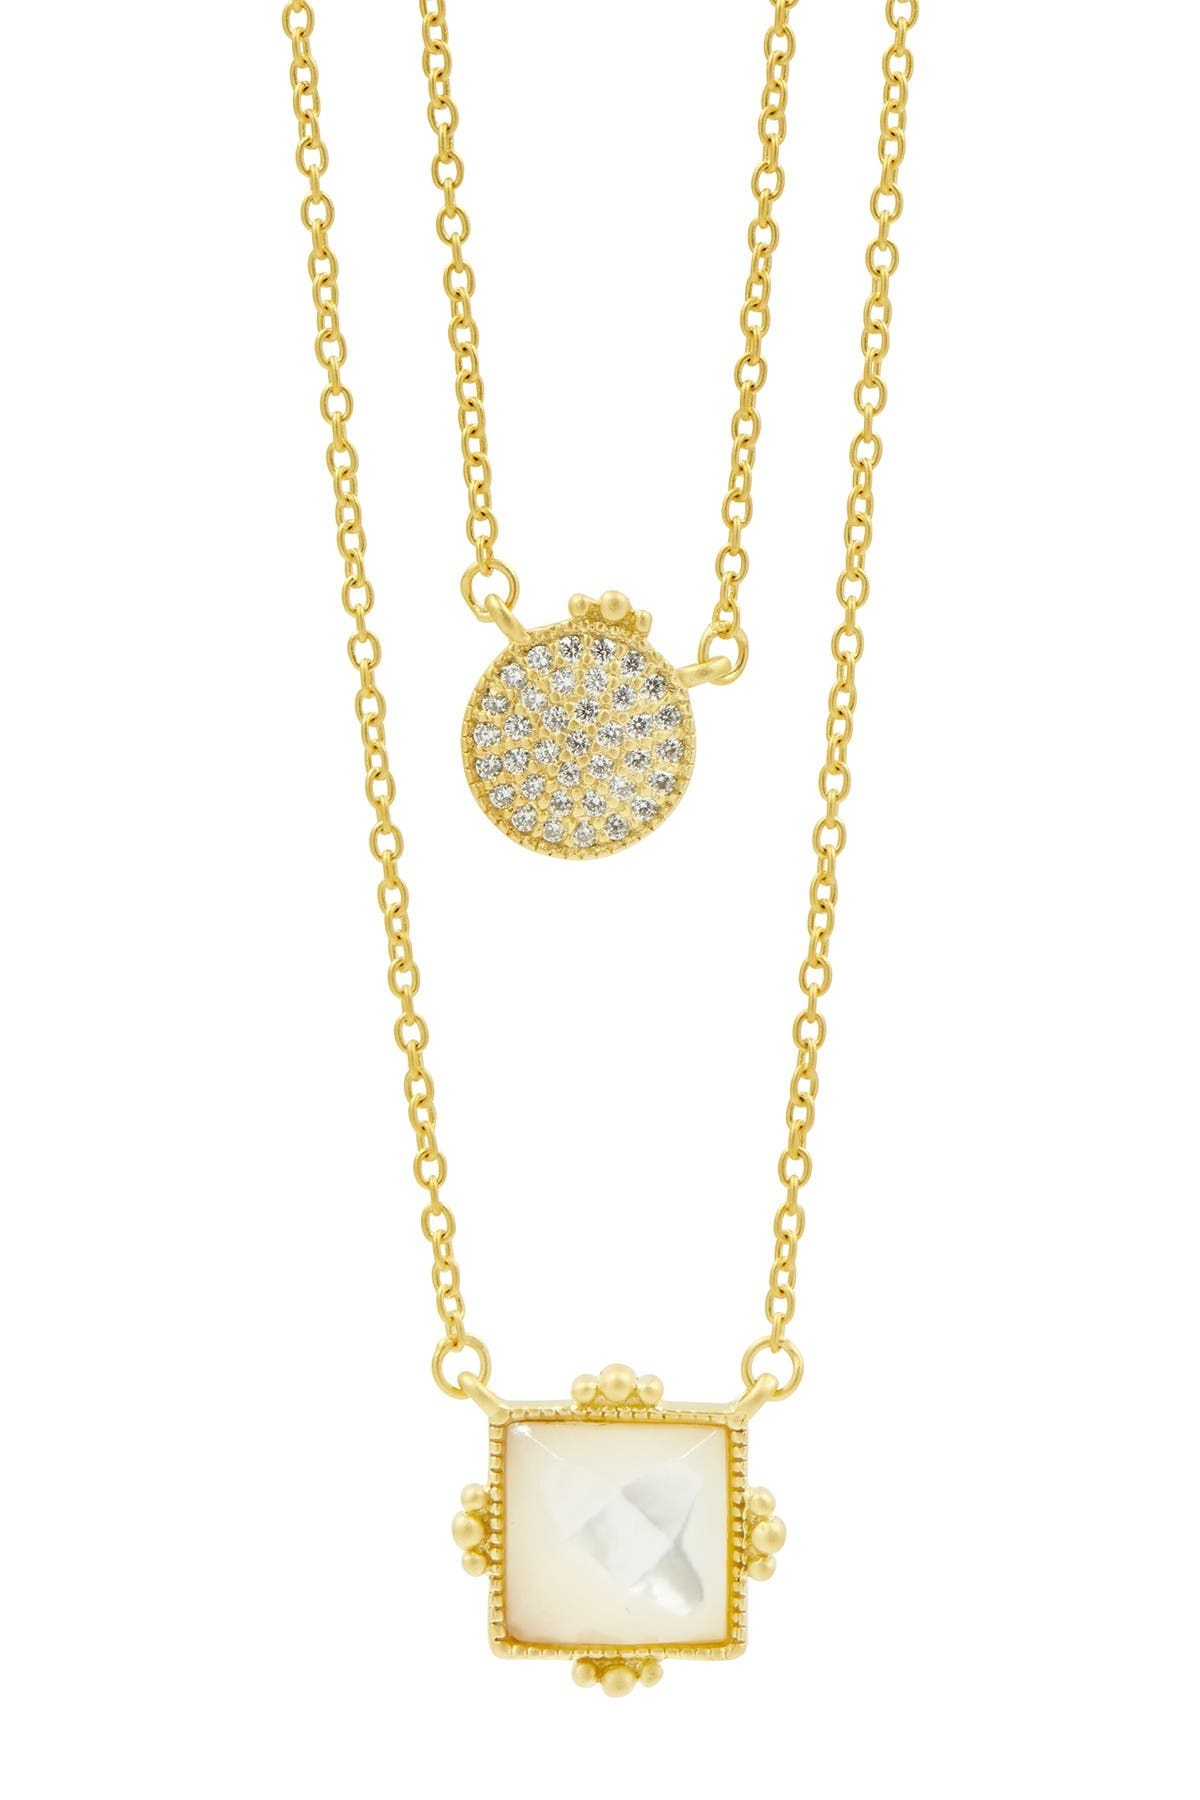 Image of Freida Rothman 14K Gold Plated Sterling Silver Amazonian Mother of Pearl & CZ Allure Double Pendant Necklace